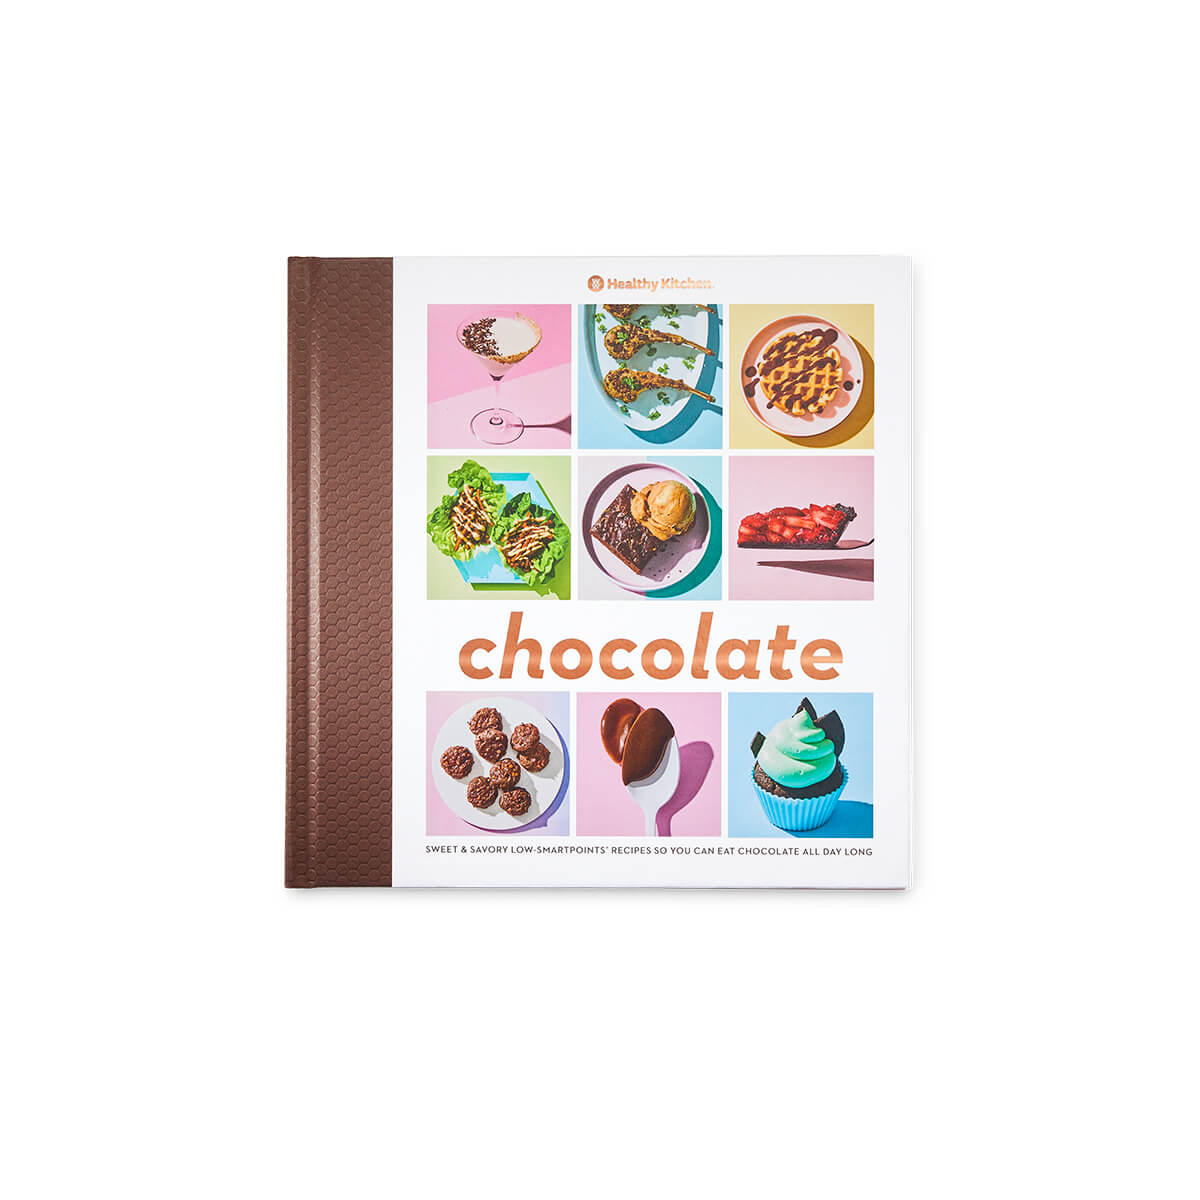 Chocolate Cookbook - front cover of book